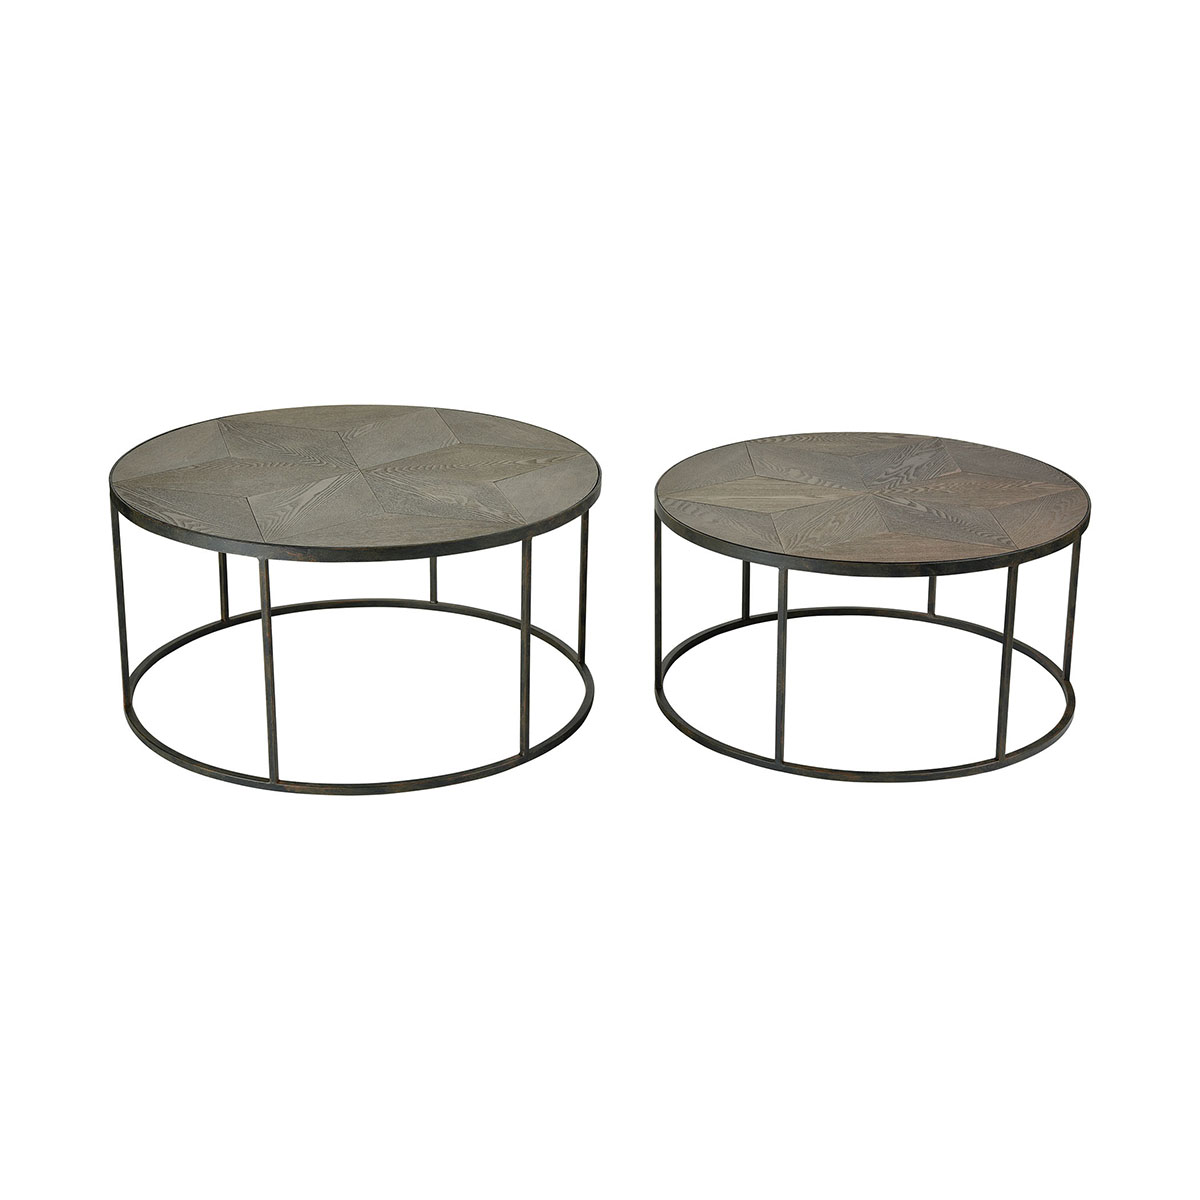 Circa Coffee Tables Set of 2 | Elk Home